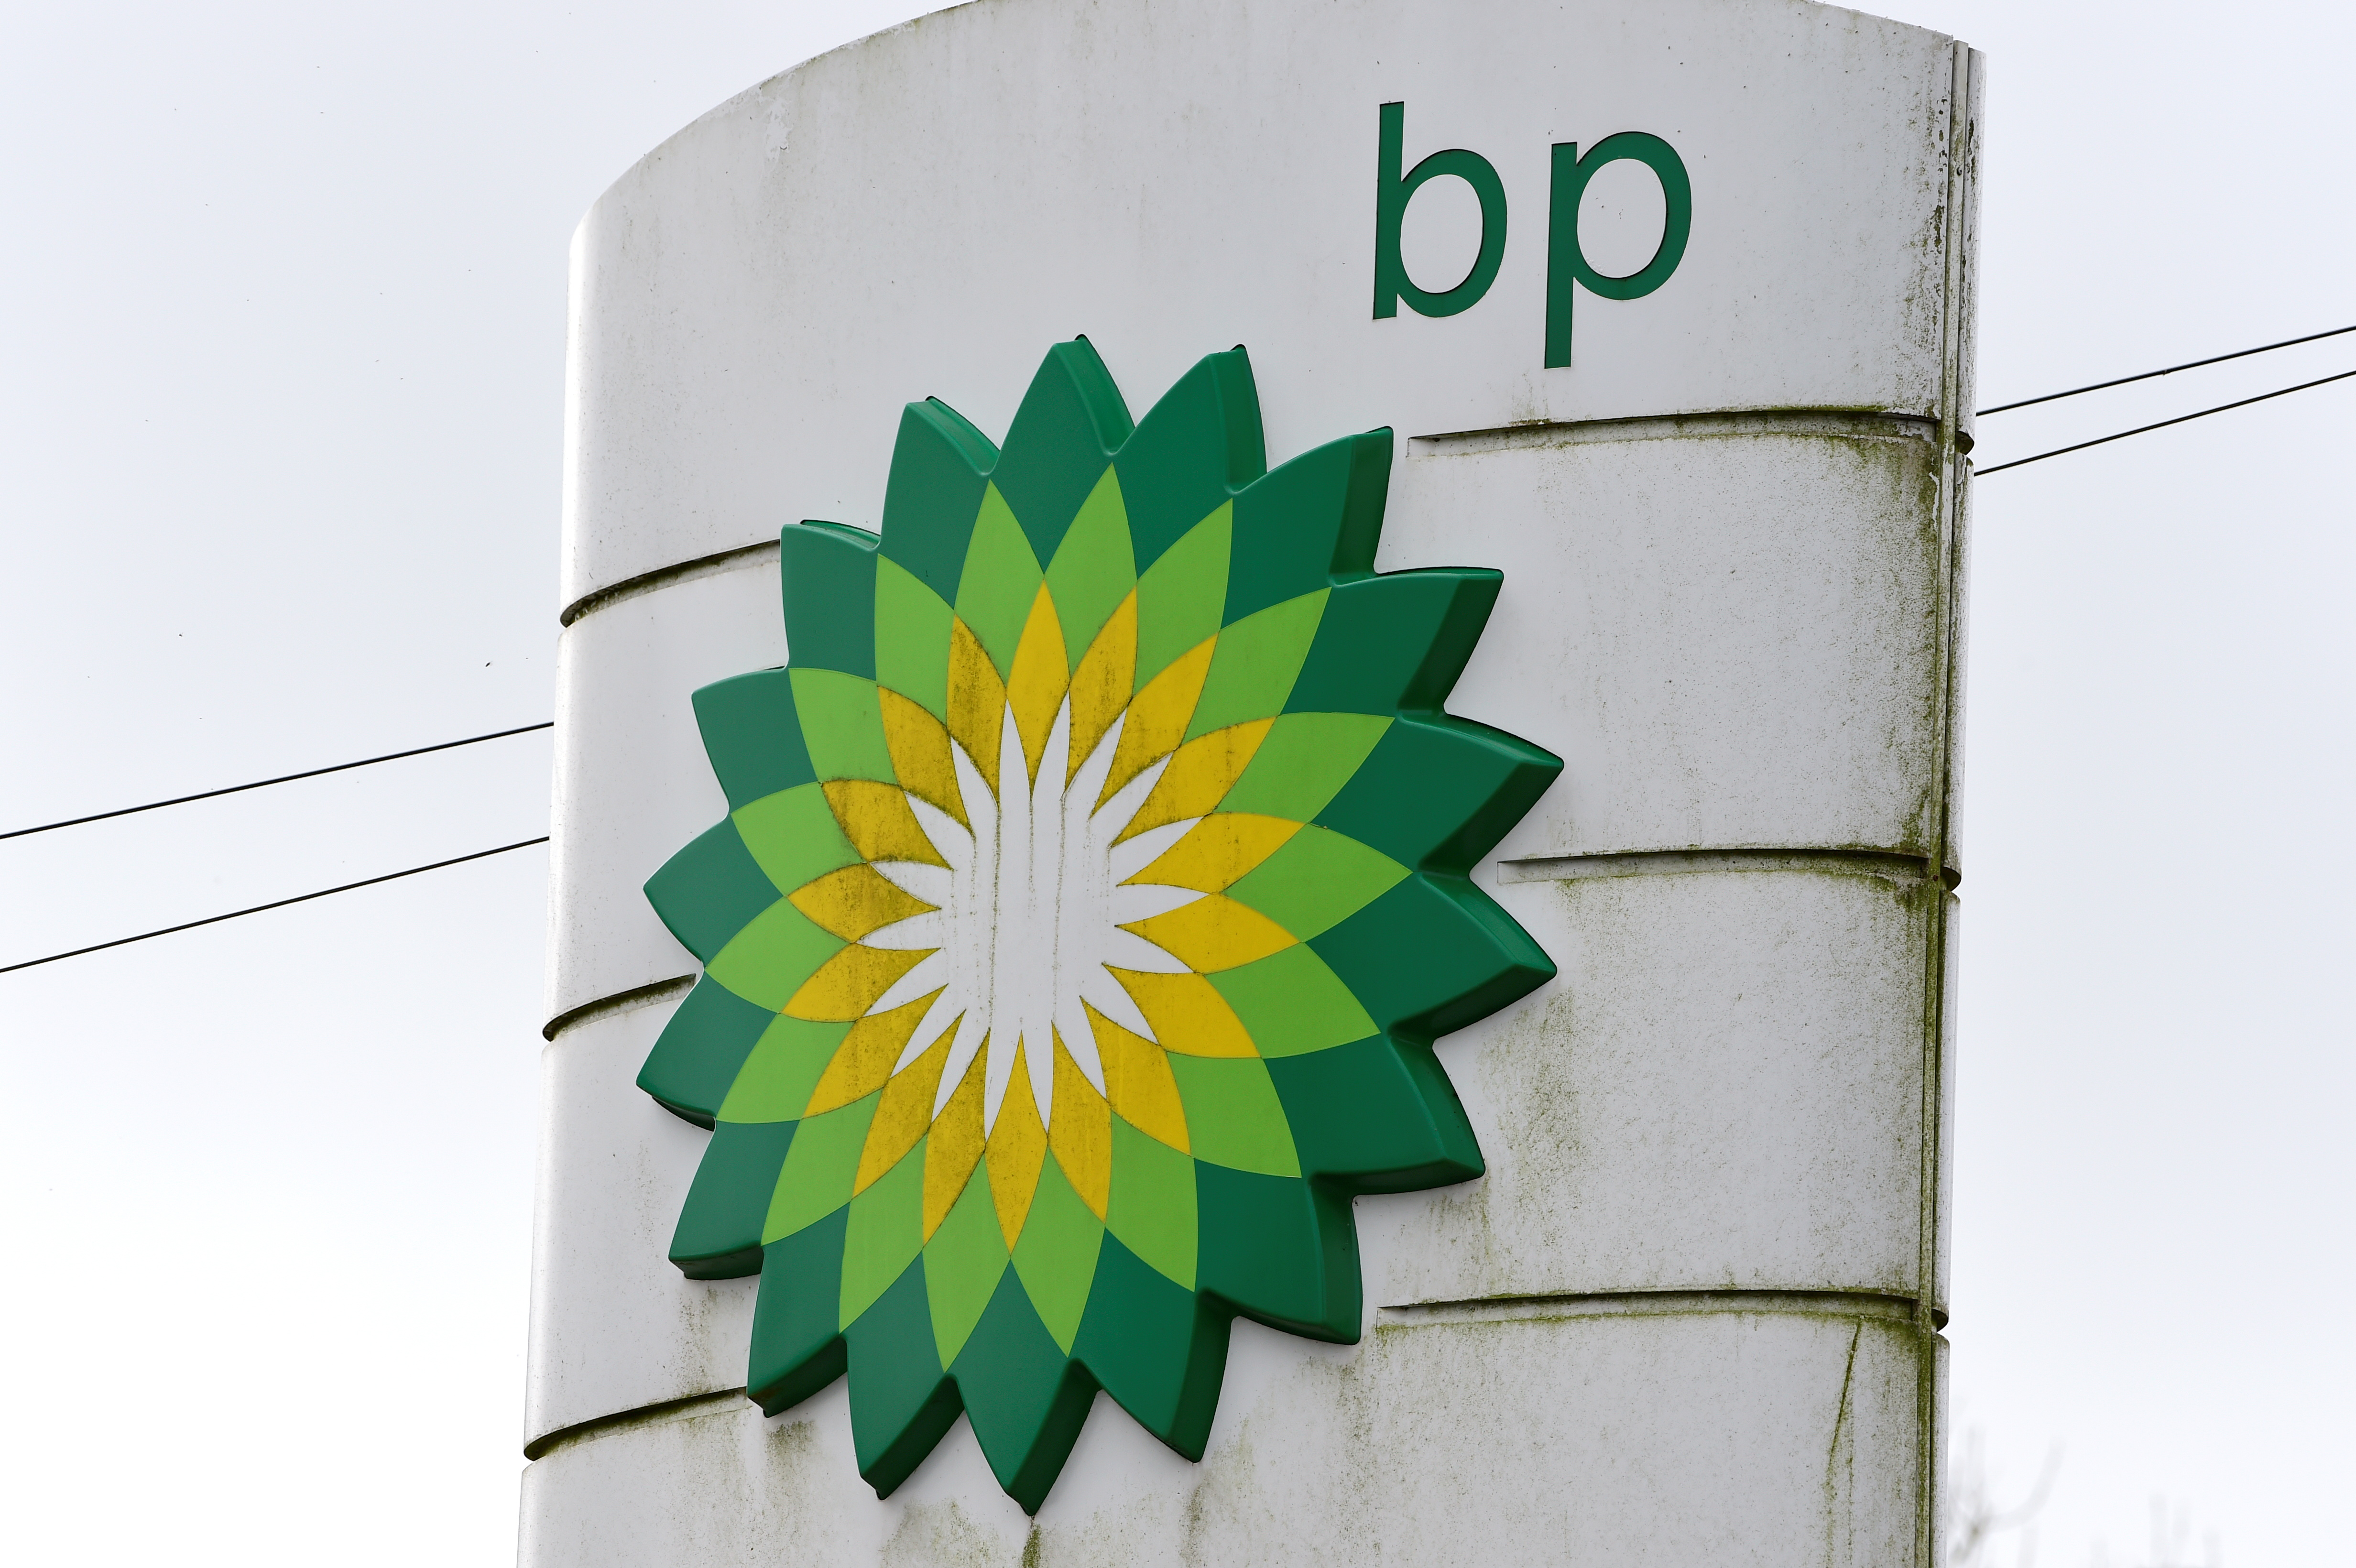 A BP logo is pictured at a petrol and diesel filling station, Llanteg, Pembrokeshire, Wales, Britain, September 24, 2021. REUTERS/Rebecca Naden